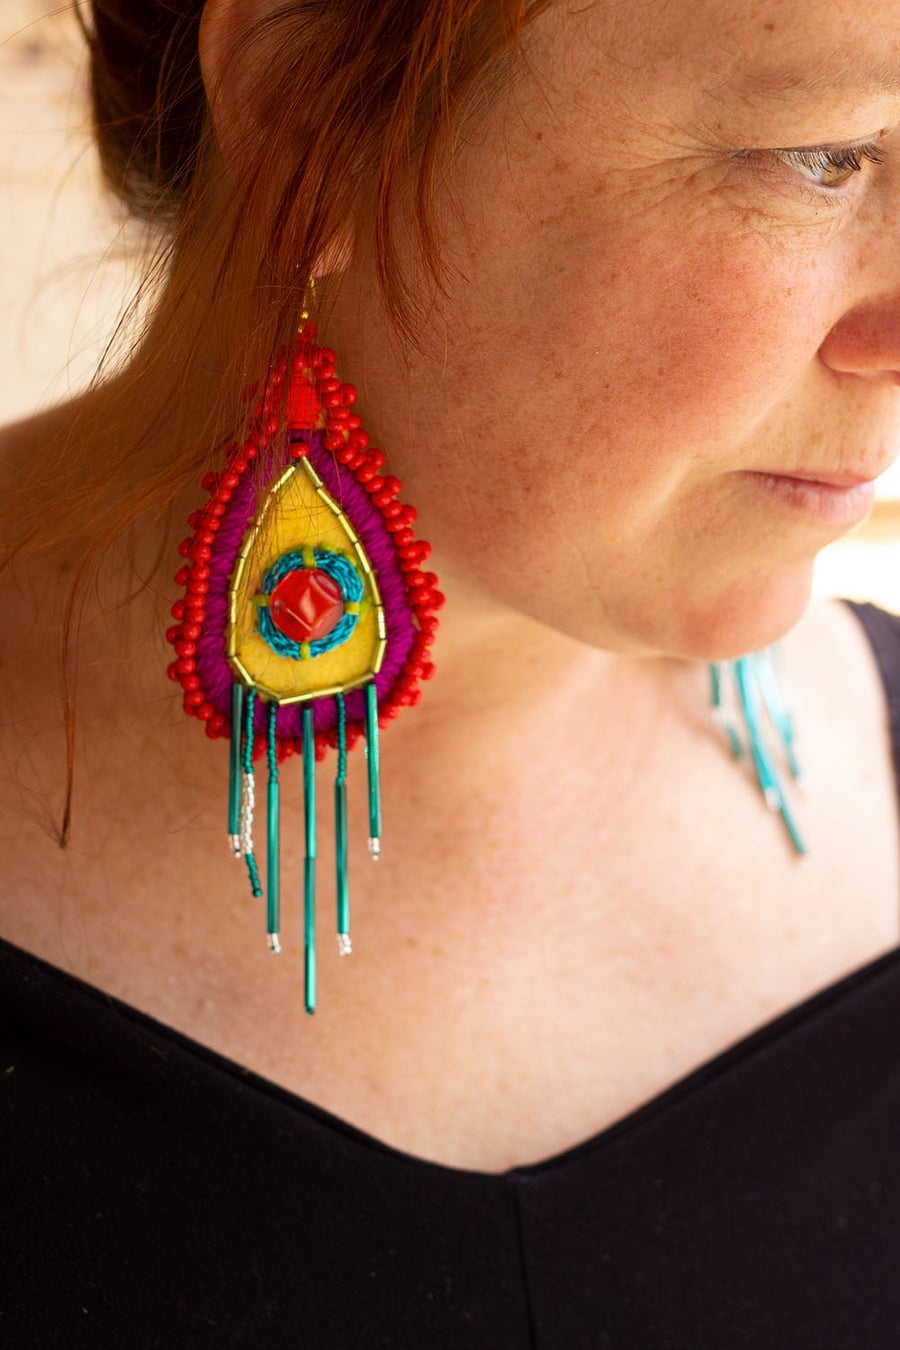 BOUCLE D'OREILLE BRODÉE  ROUGE-JAUNE-PRUNE-TURQUOISE